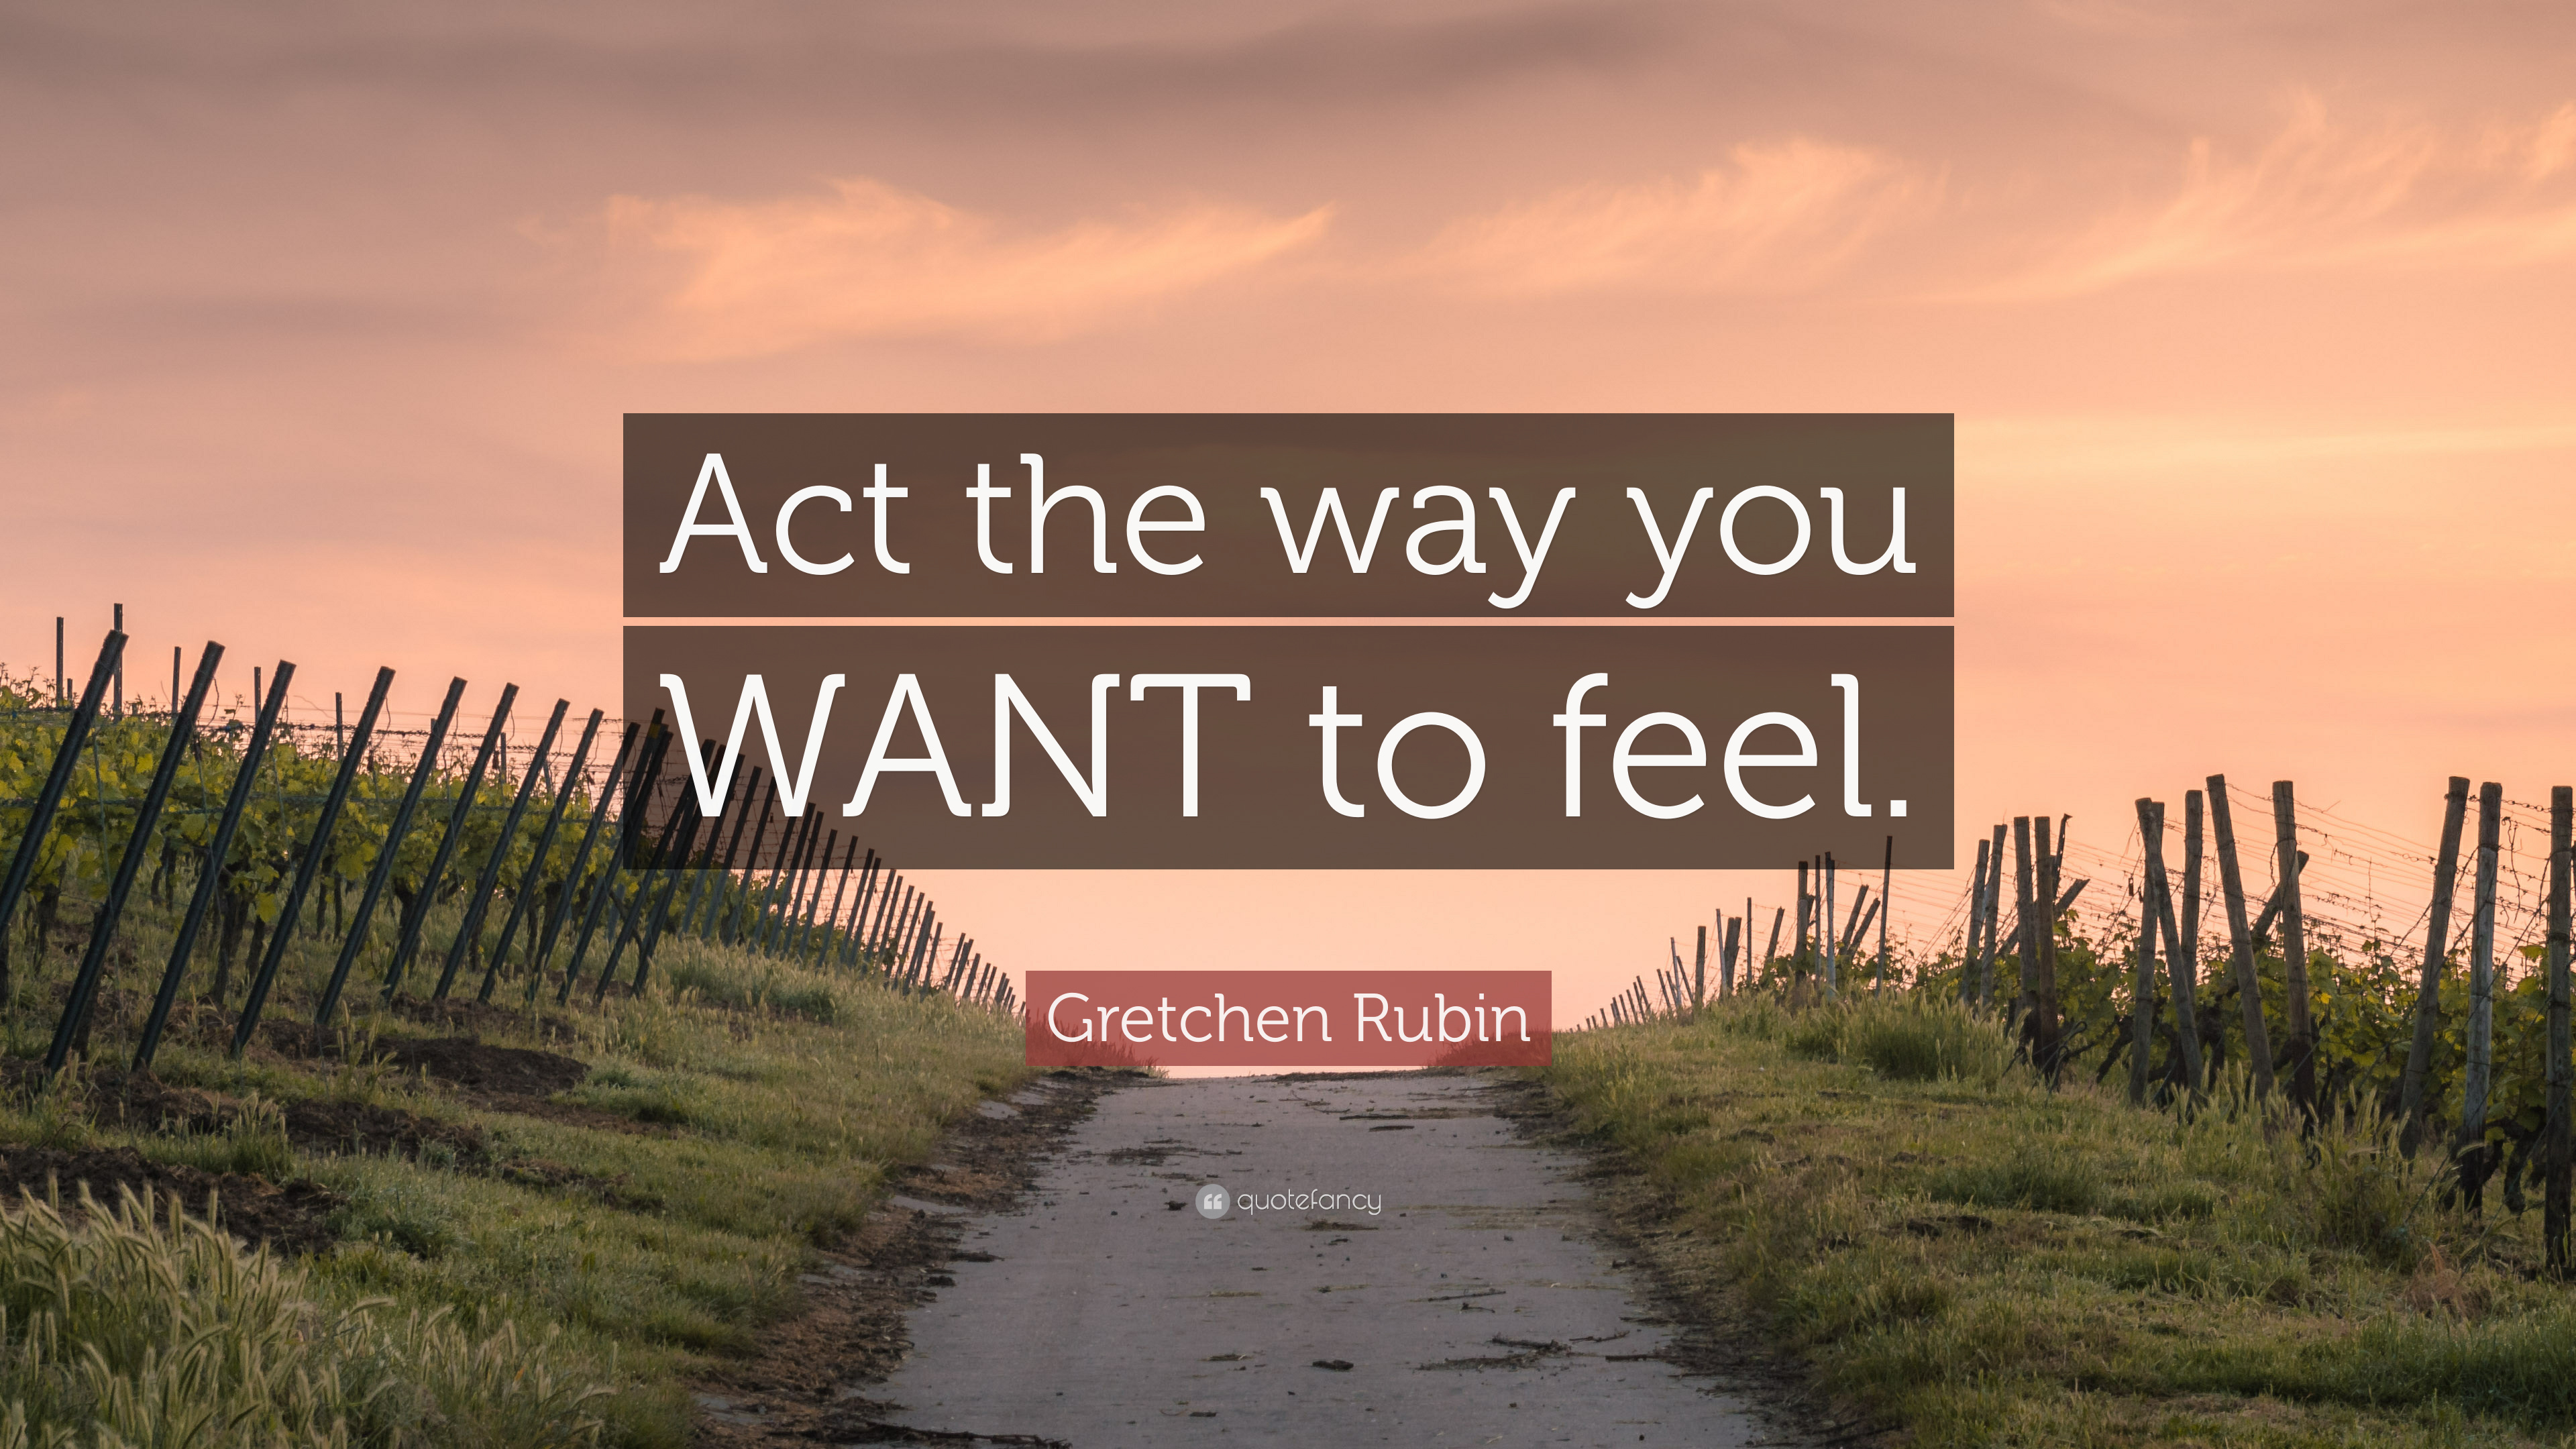 2128358-Gretchen-Rubin-Quote-Act-the-way-you-WANT-to-feel.jpg